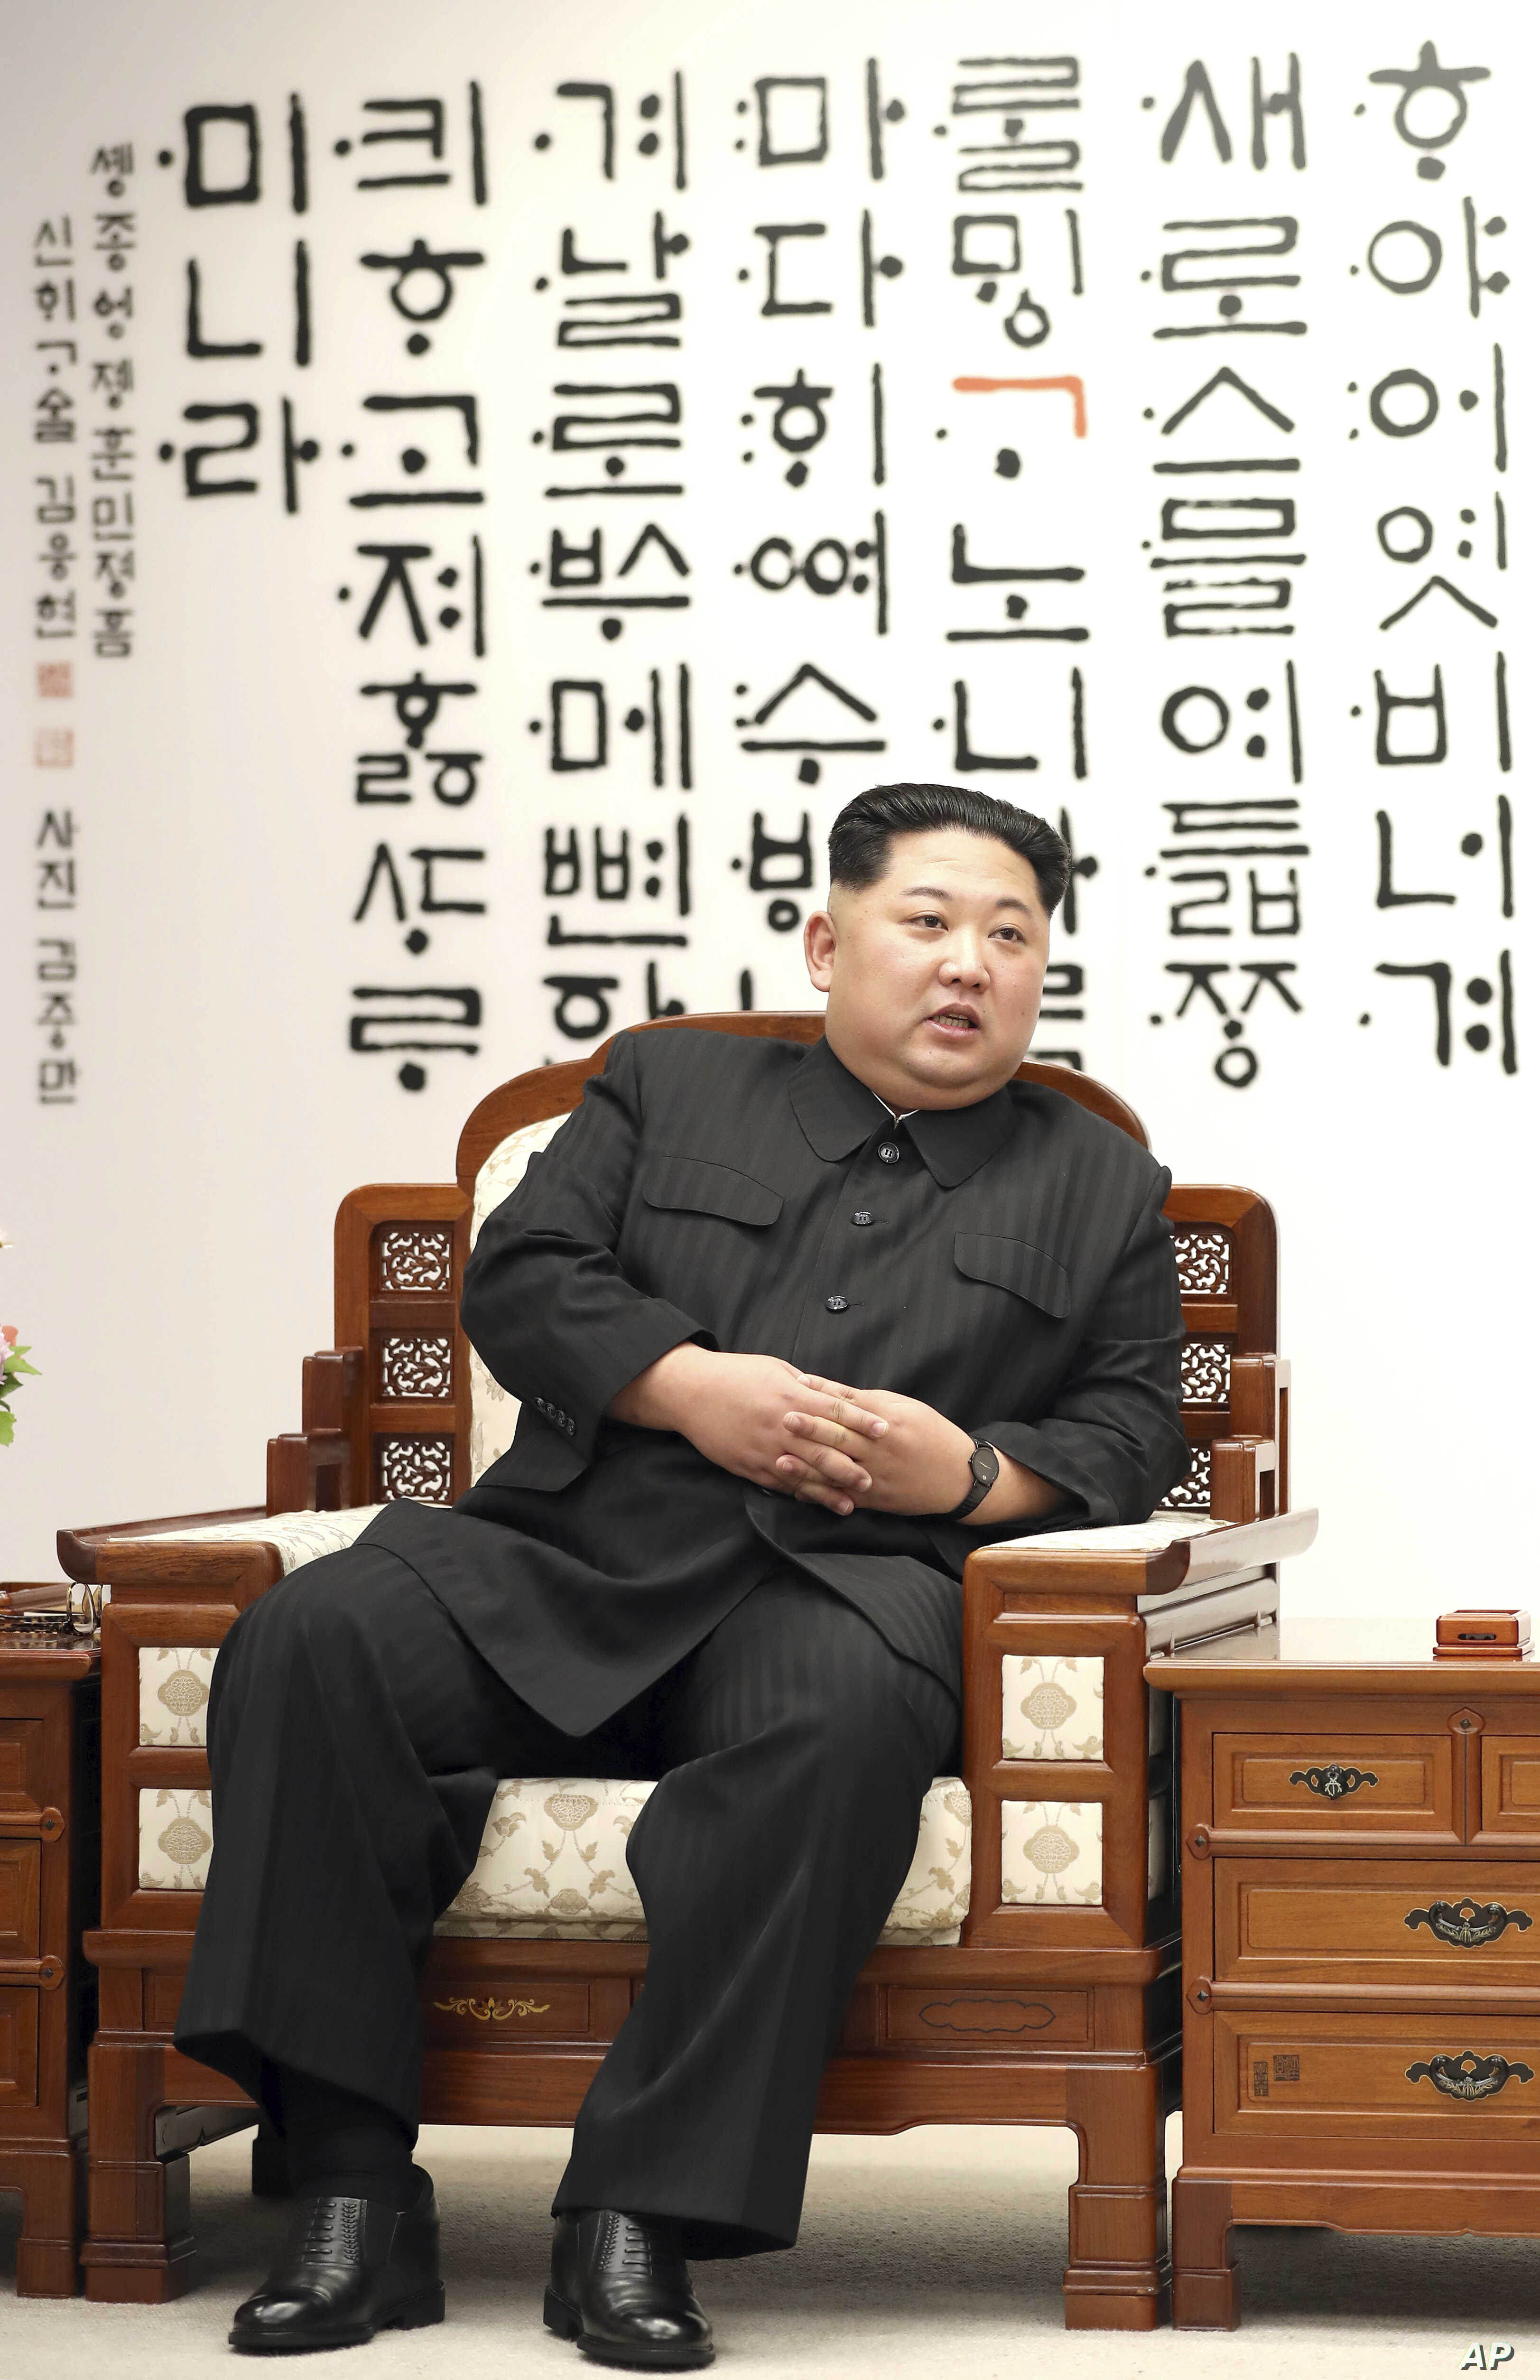 North Korean leader Kim Jong Un is seen at Peace House of the border village of Panmunjom in the Demilitarized Zone, South Korea, April 27, 2018.